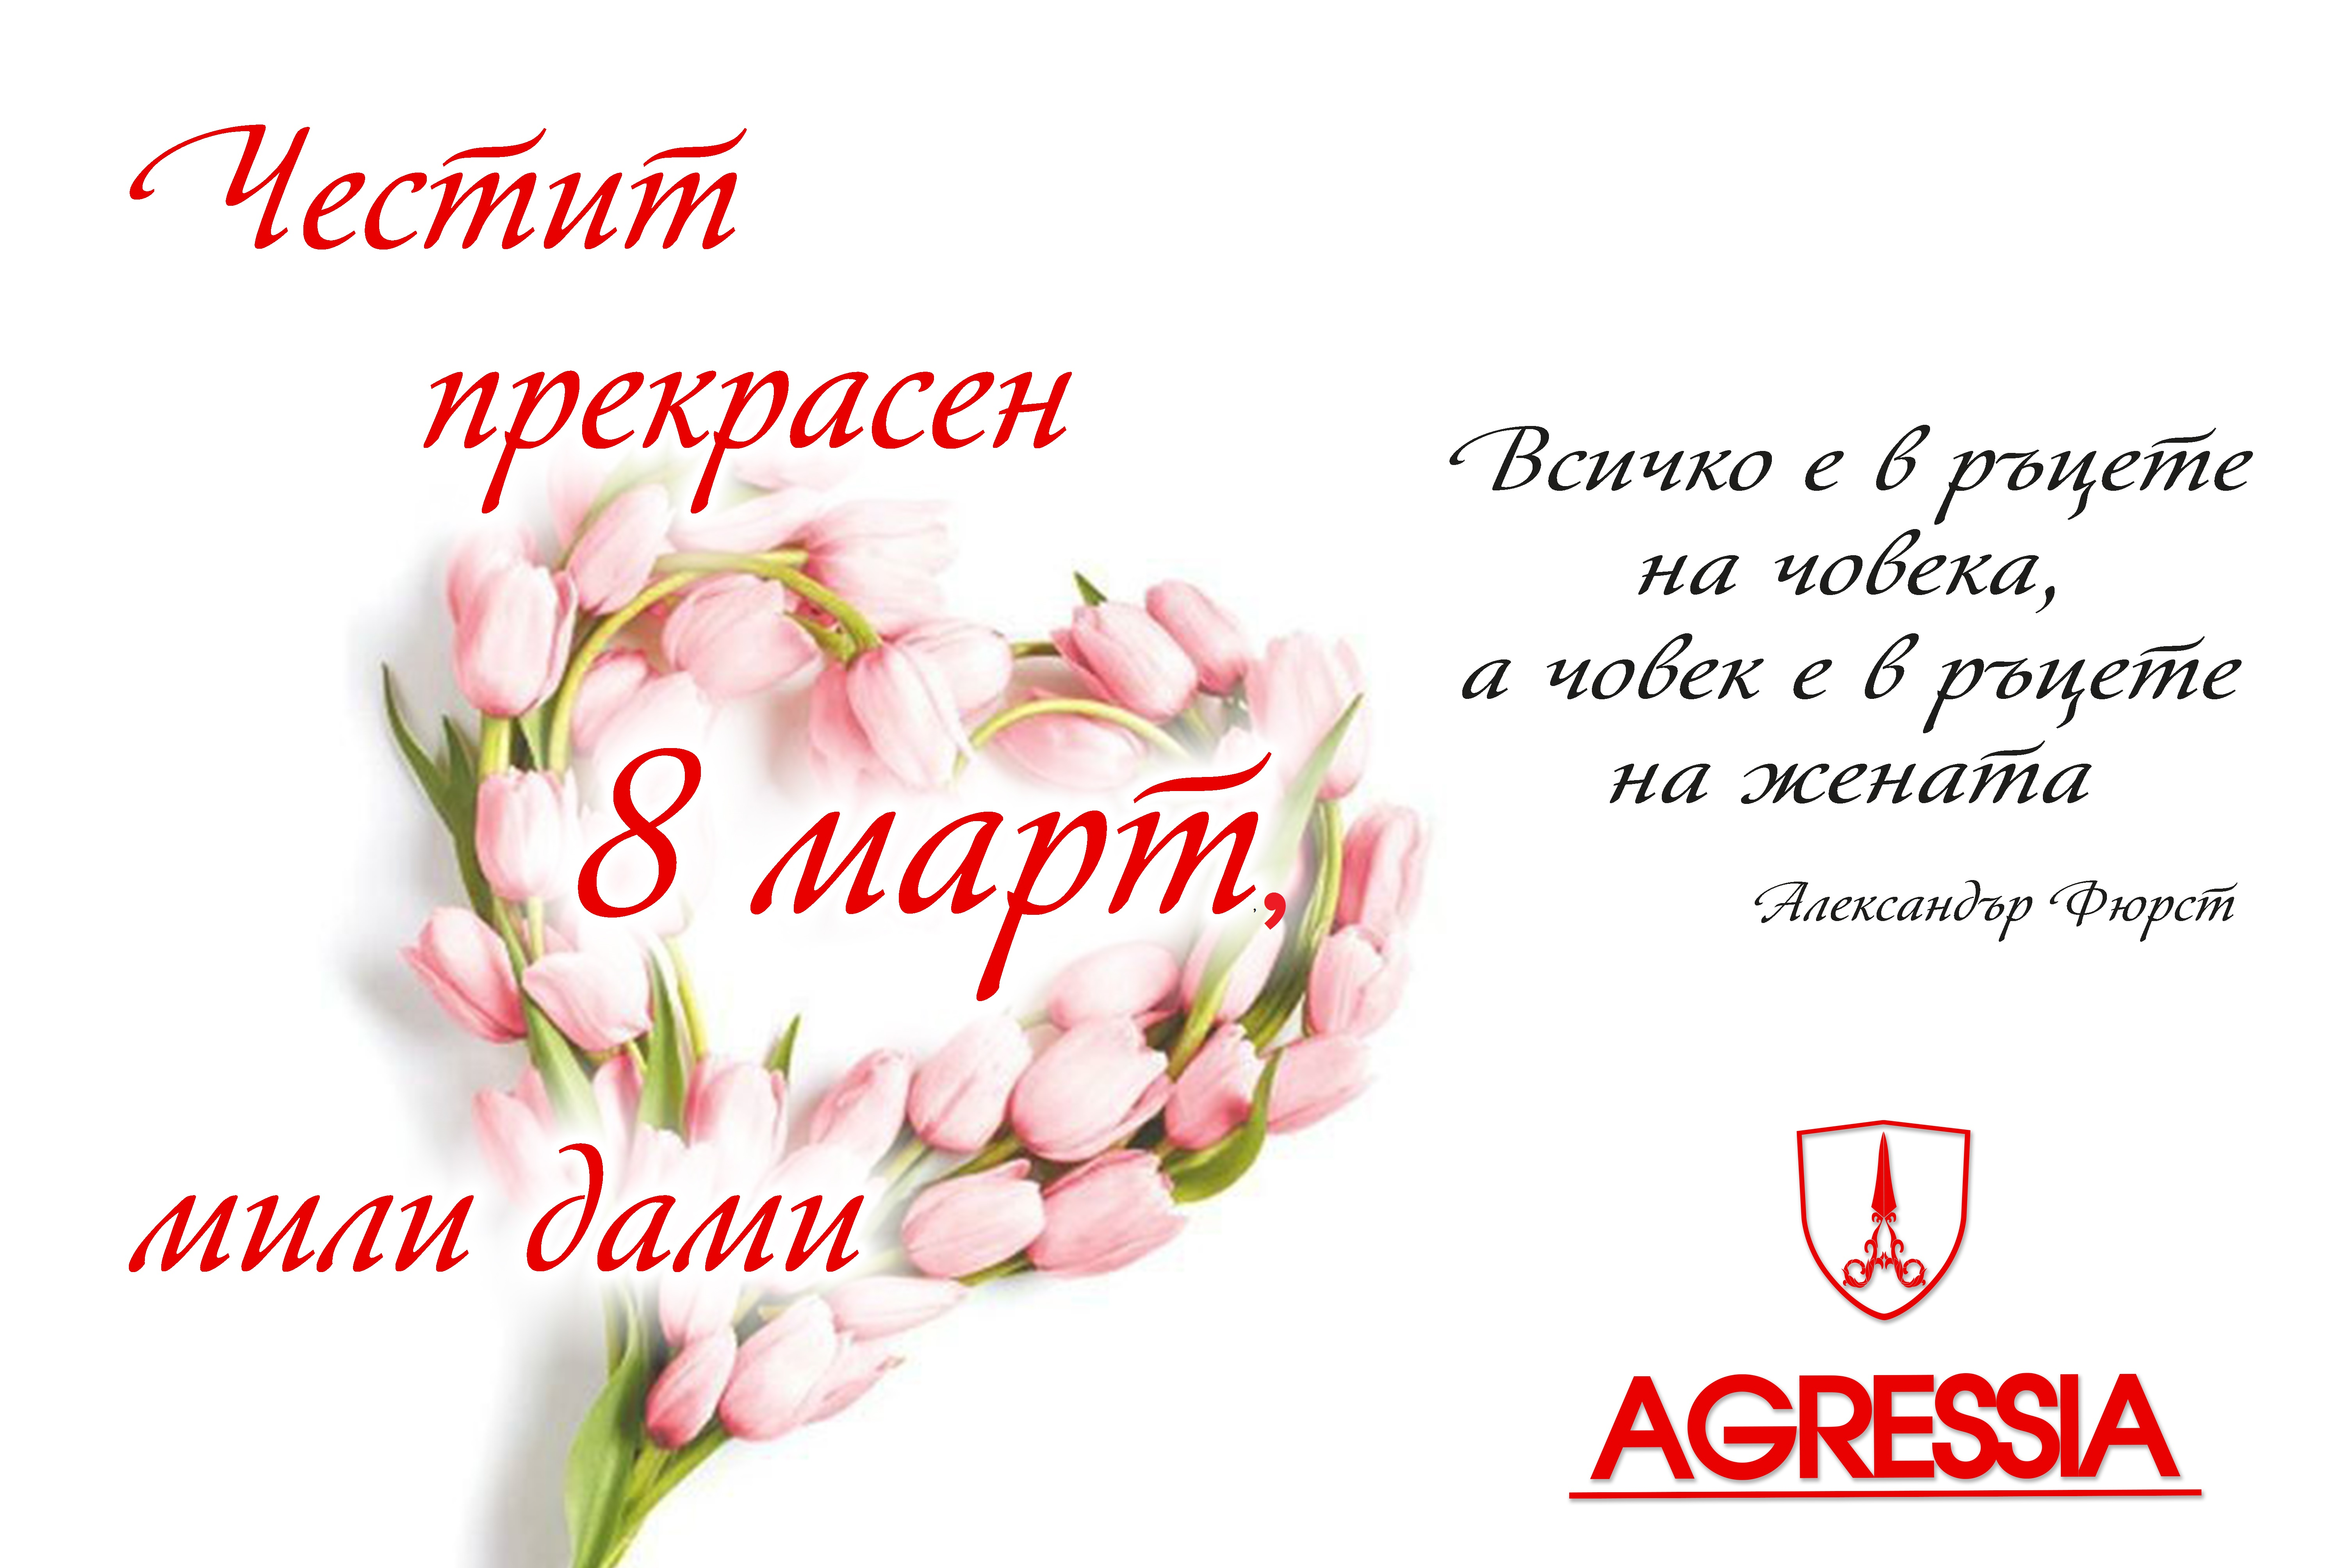 attachments/events/8mart19/8-mart_03.jpg